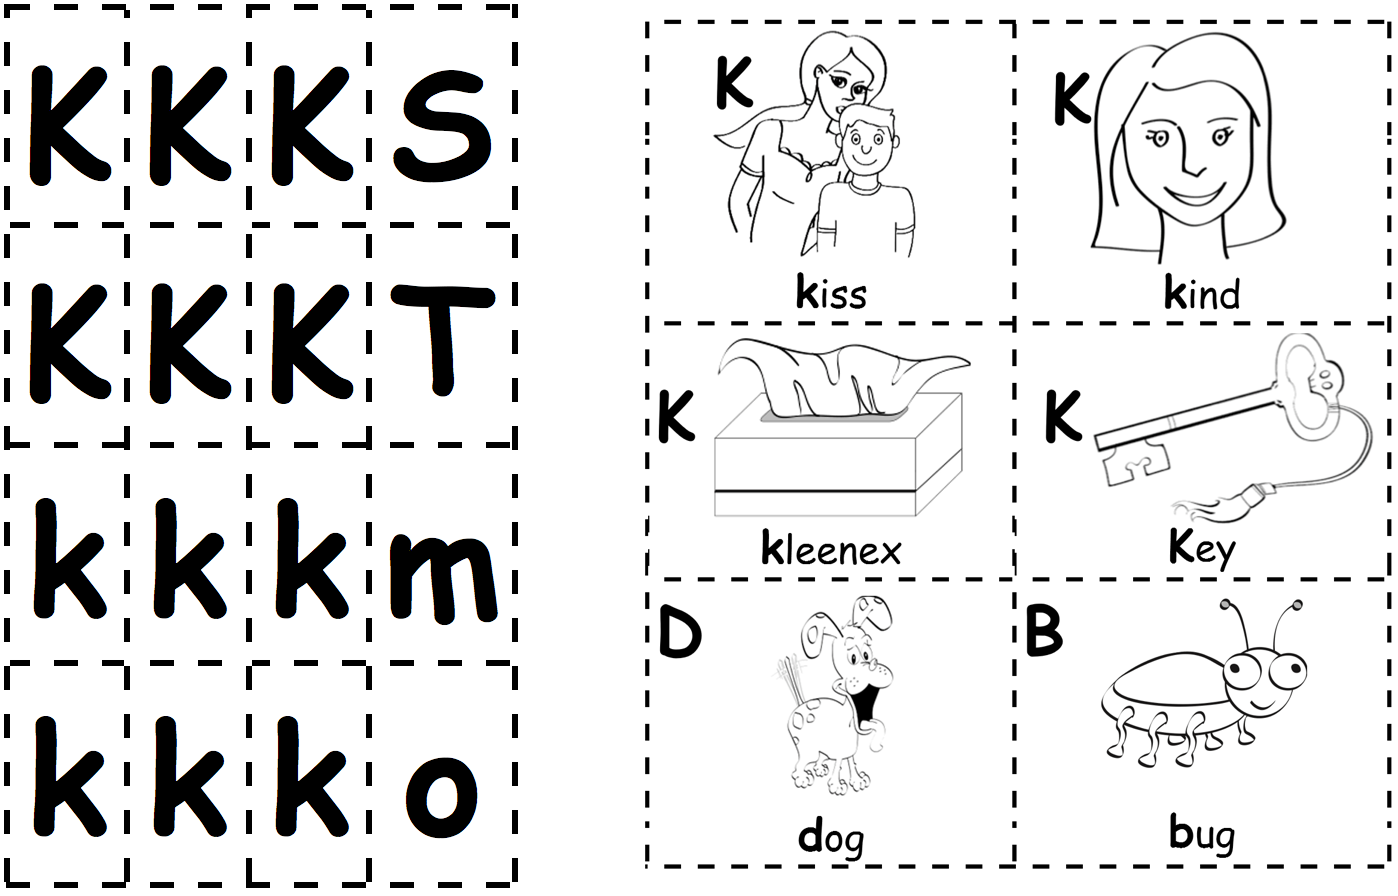 Kindergarten-Kit-Pictures-and-Letter-Cards